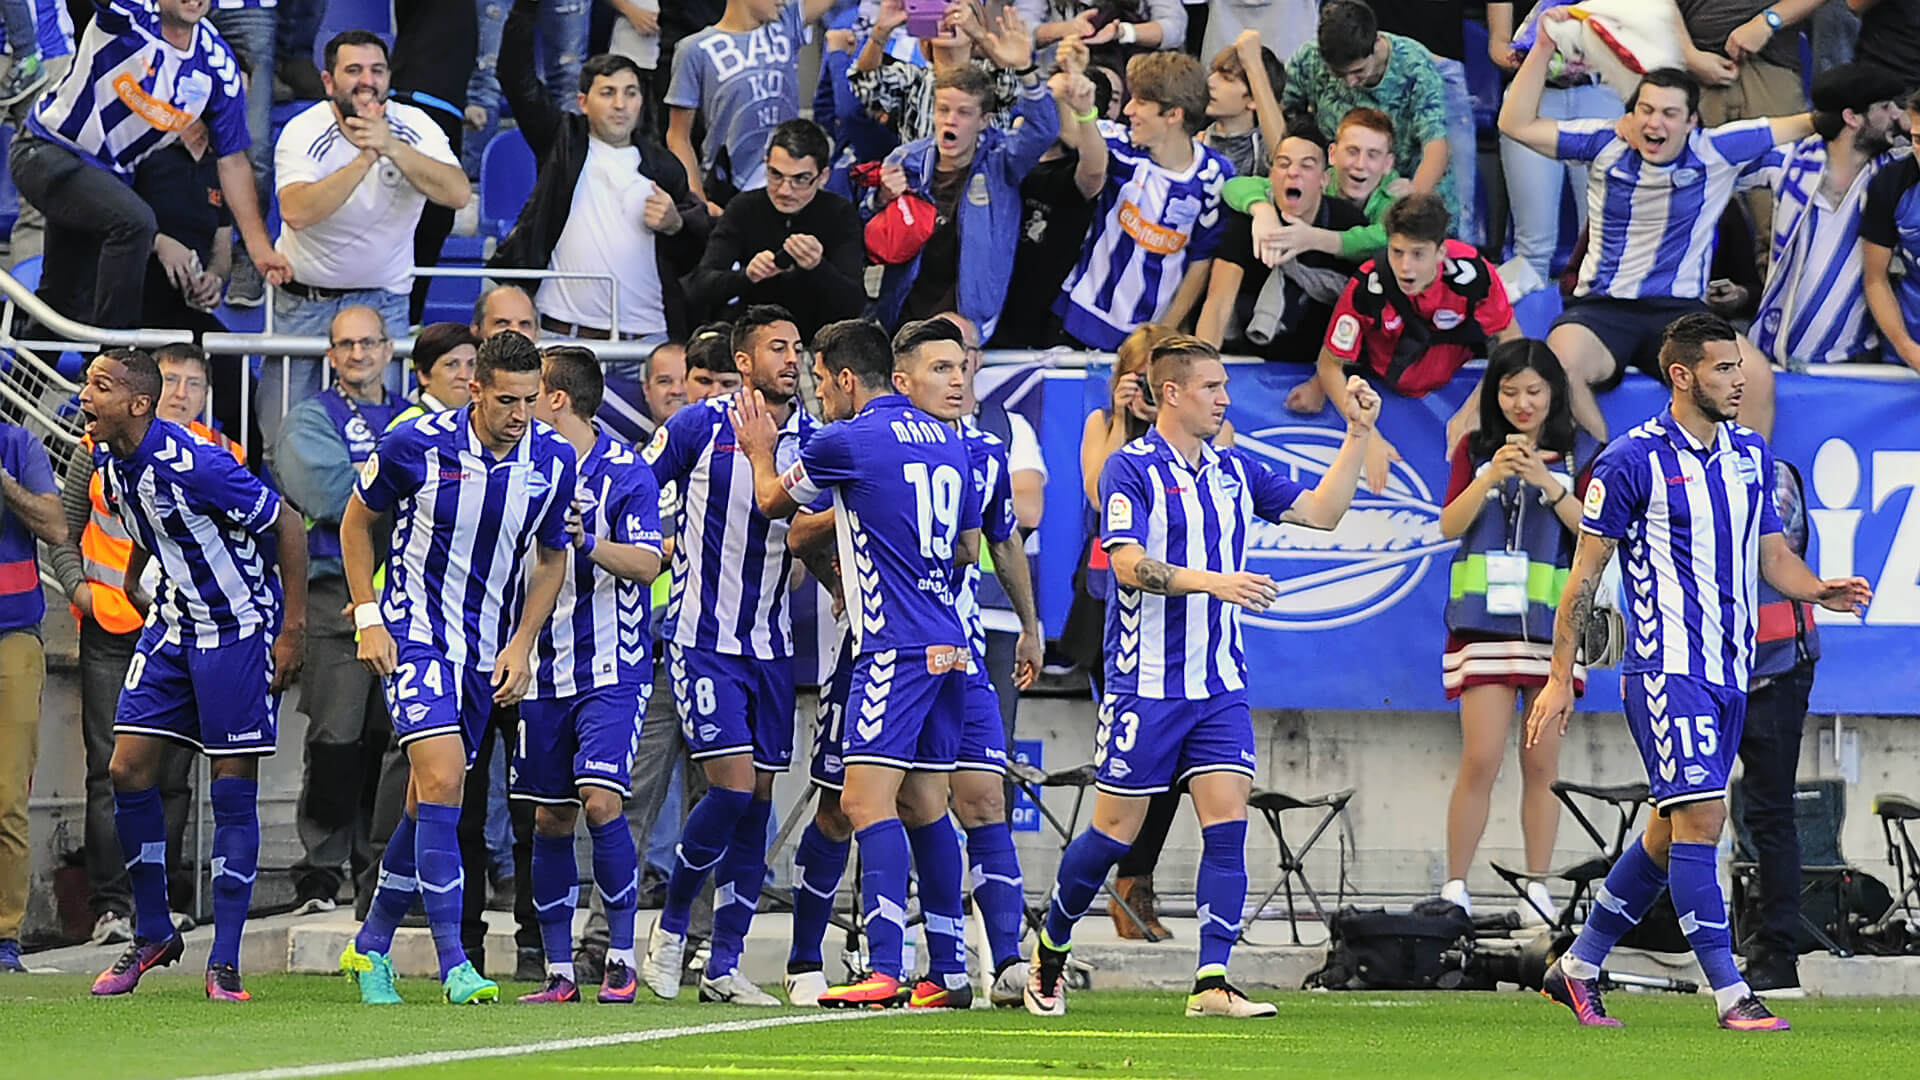 Tim Sepak Bola Deportivo Alaves &quot;width =&quot; 1119 &quot;height =&quot; 630 &quot;/&gt; </p> <p style=